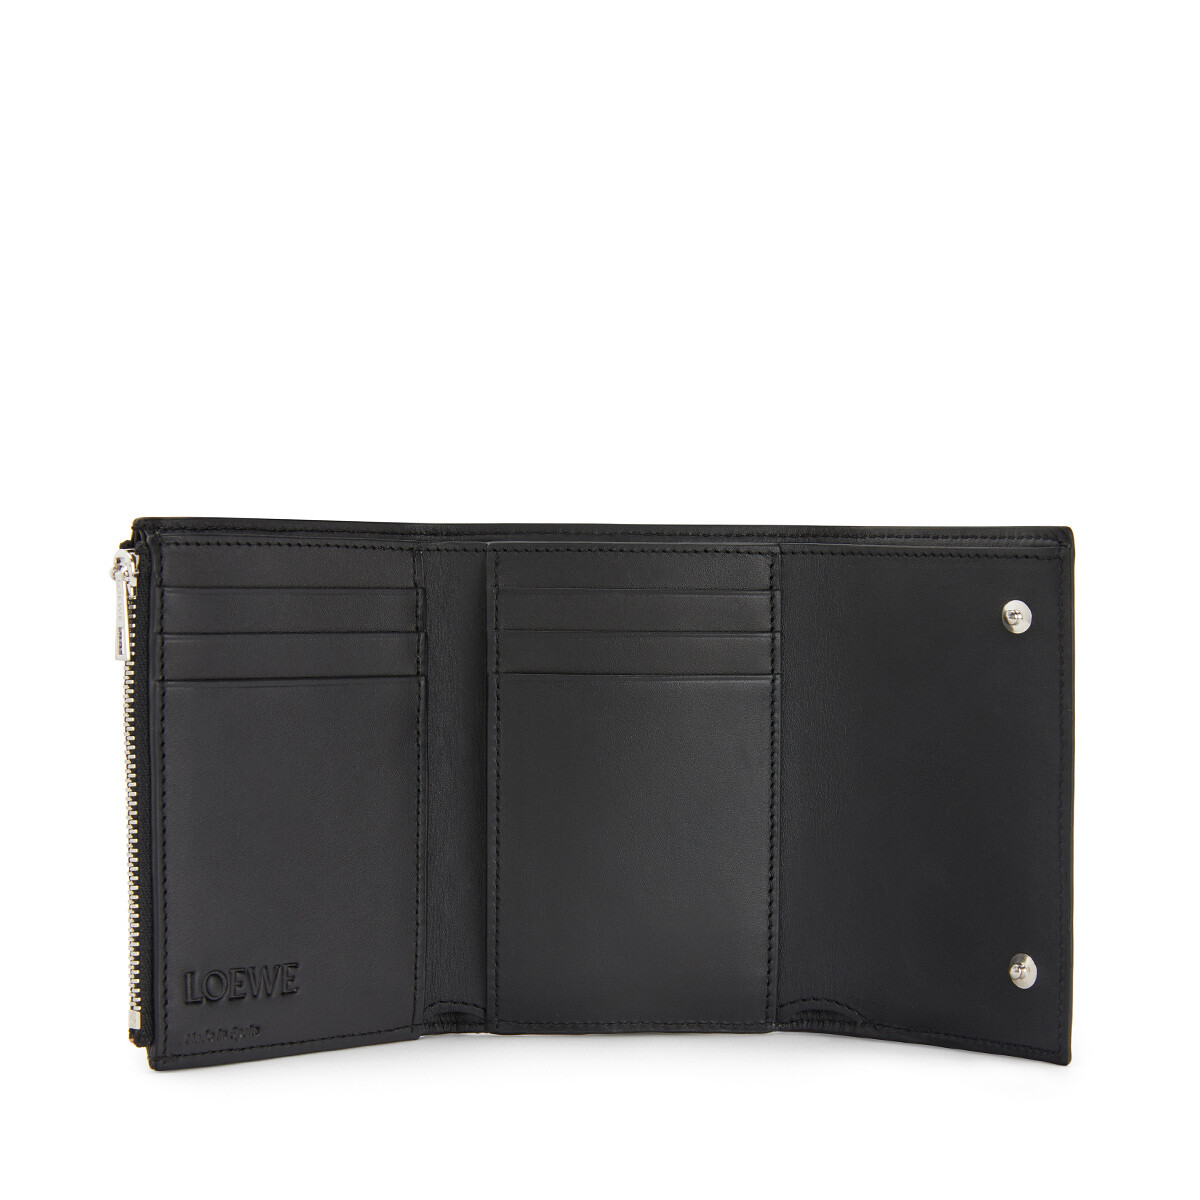 LOEWE Small Vertical Wallet 黑色/多色 front